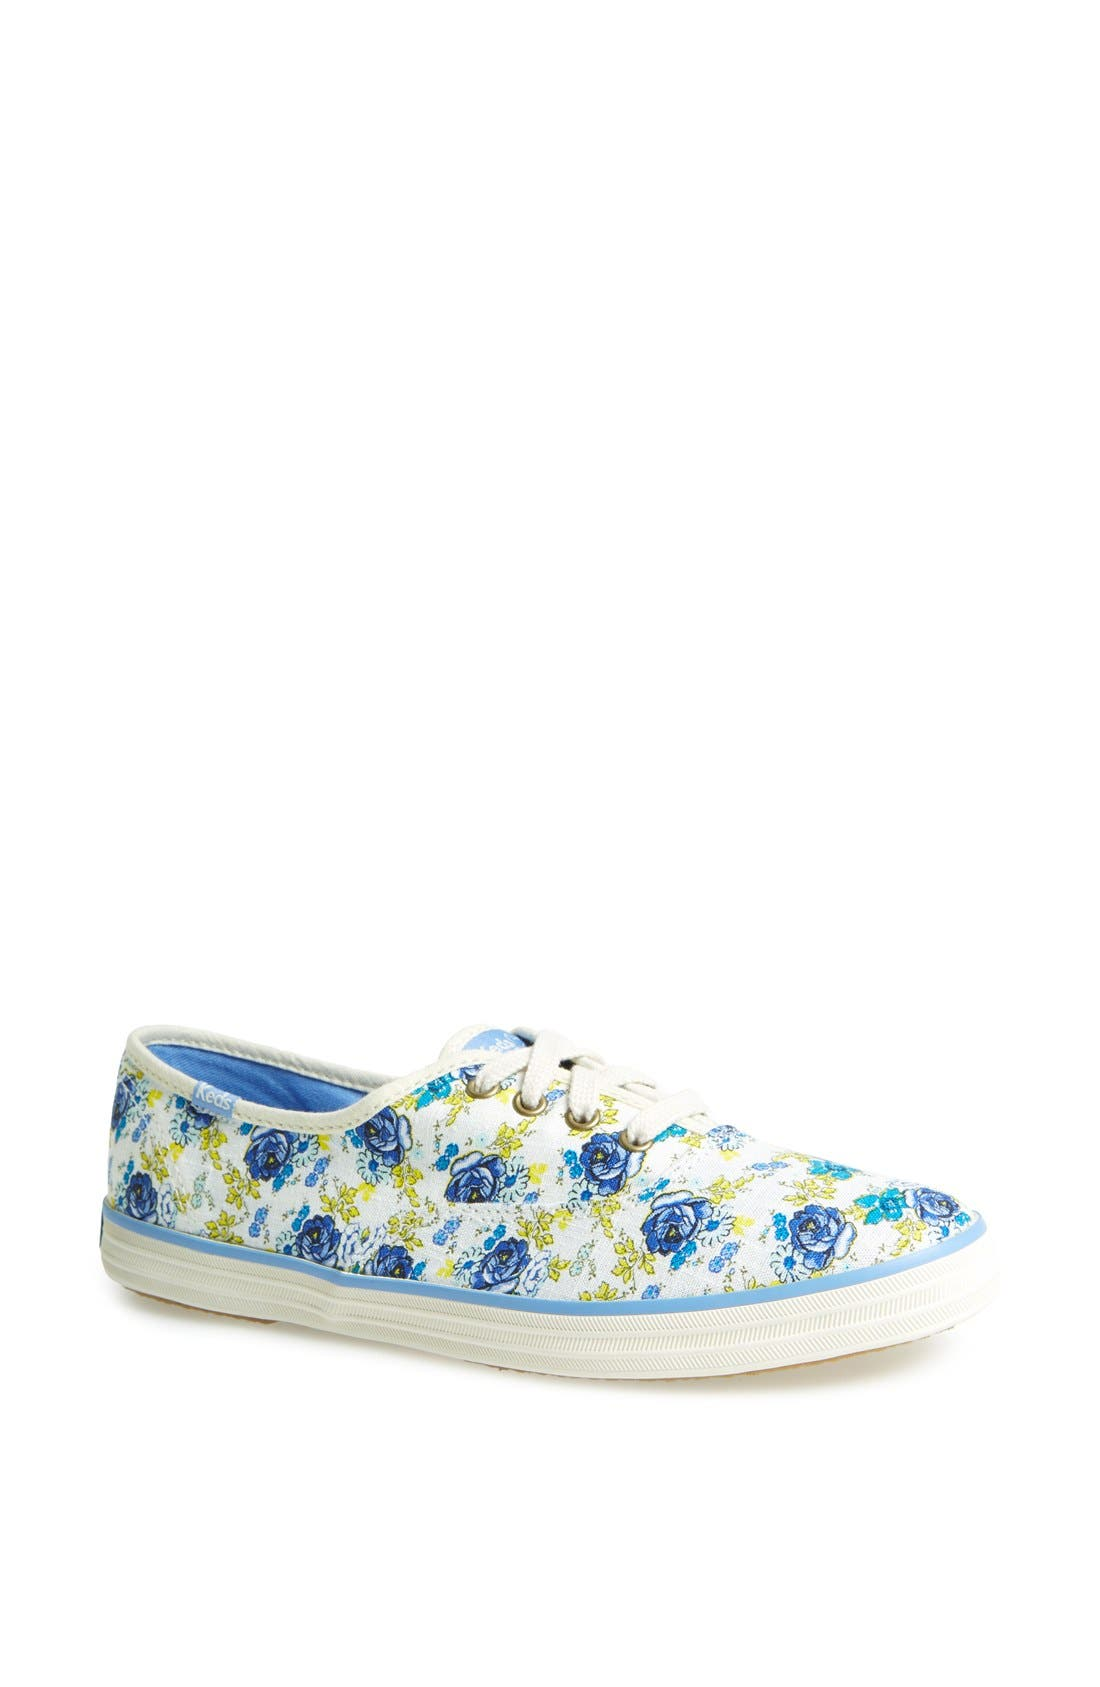 Alternate Image 1 Selected - Keds® Taylor Swift 'Champion Floral' Sneaker (Women)